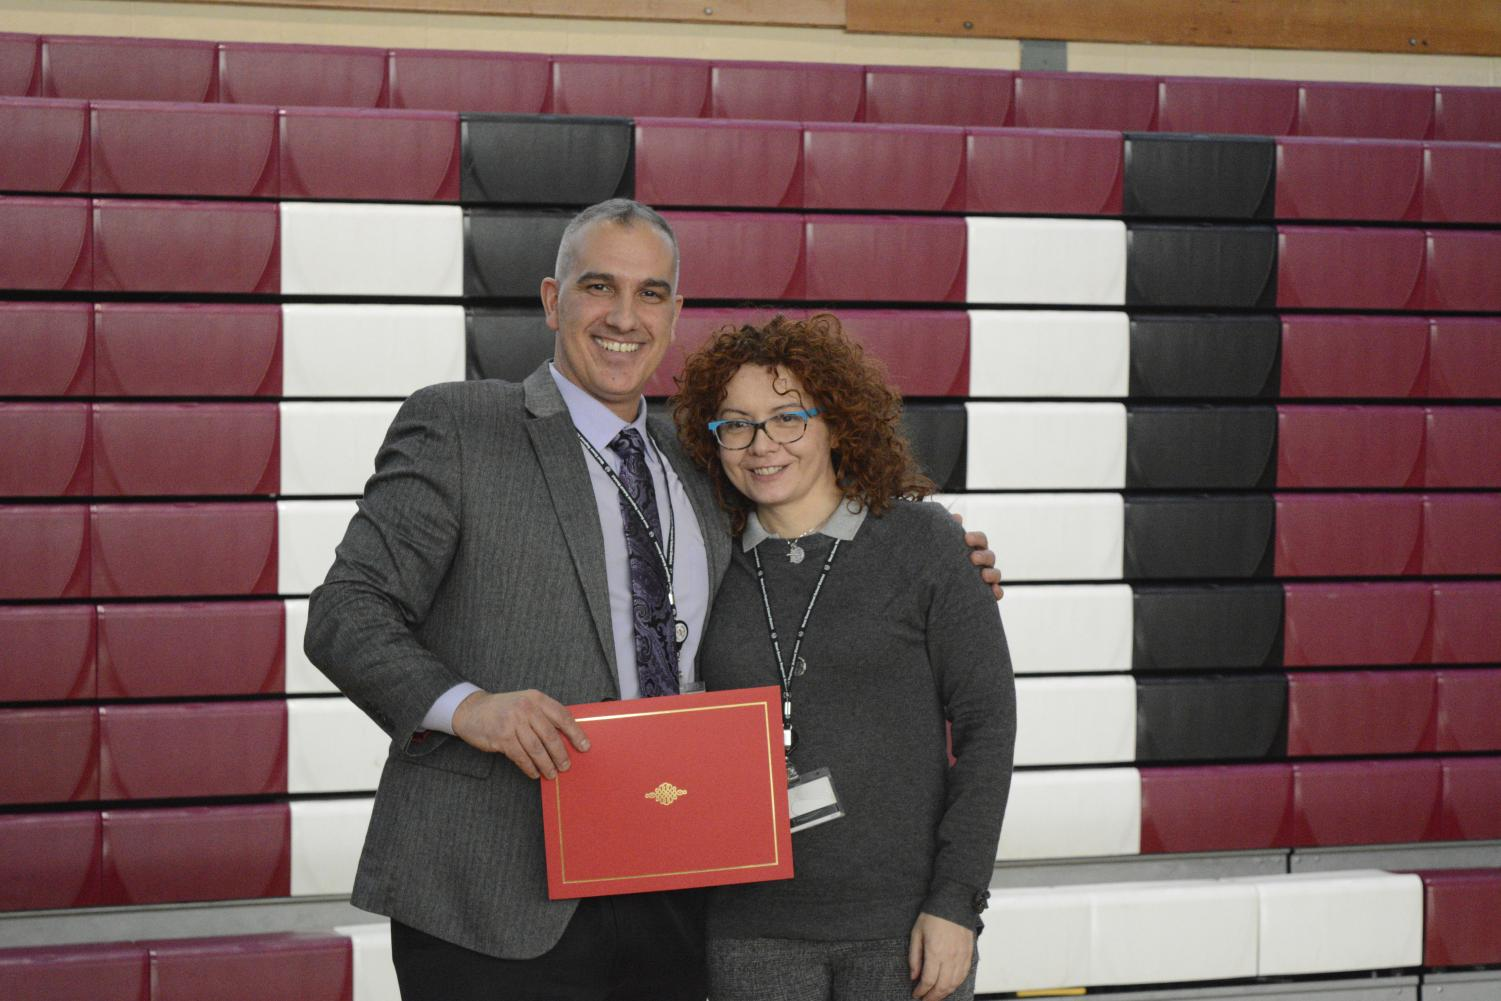 Ms. Pivetta received a nomination for her hard work in the classroom. (Photo Courtesy of Lucia Bazzarelli)